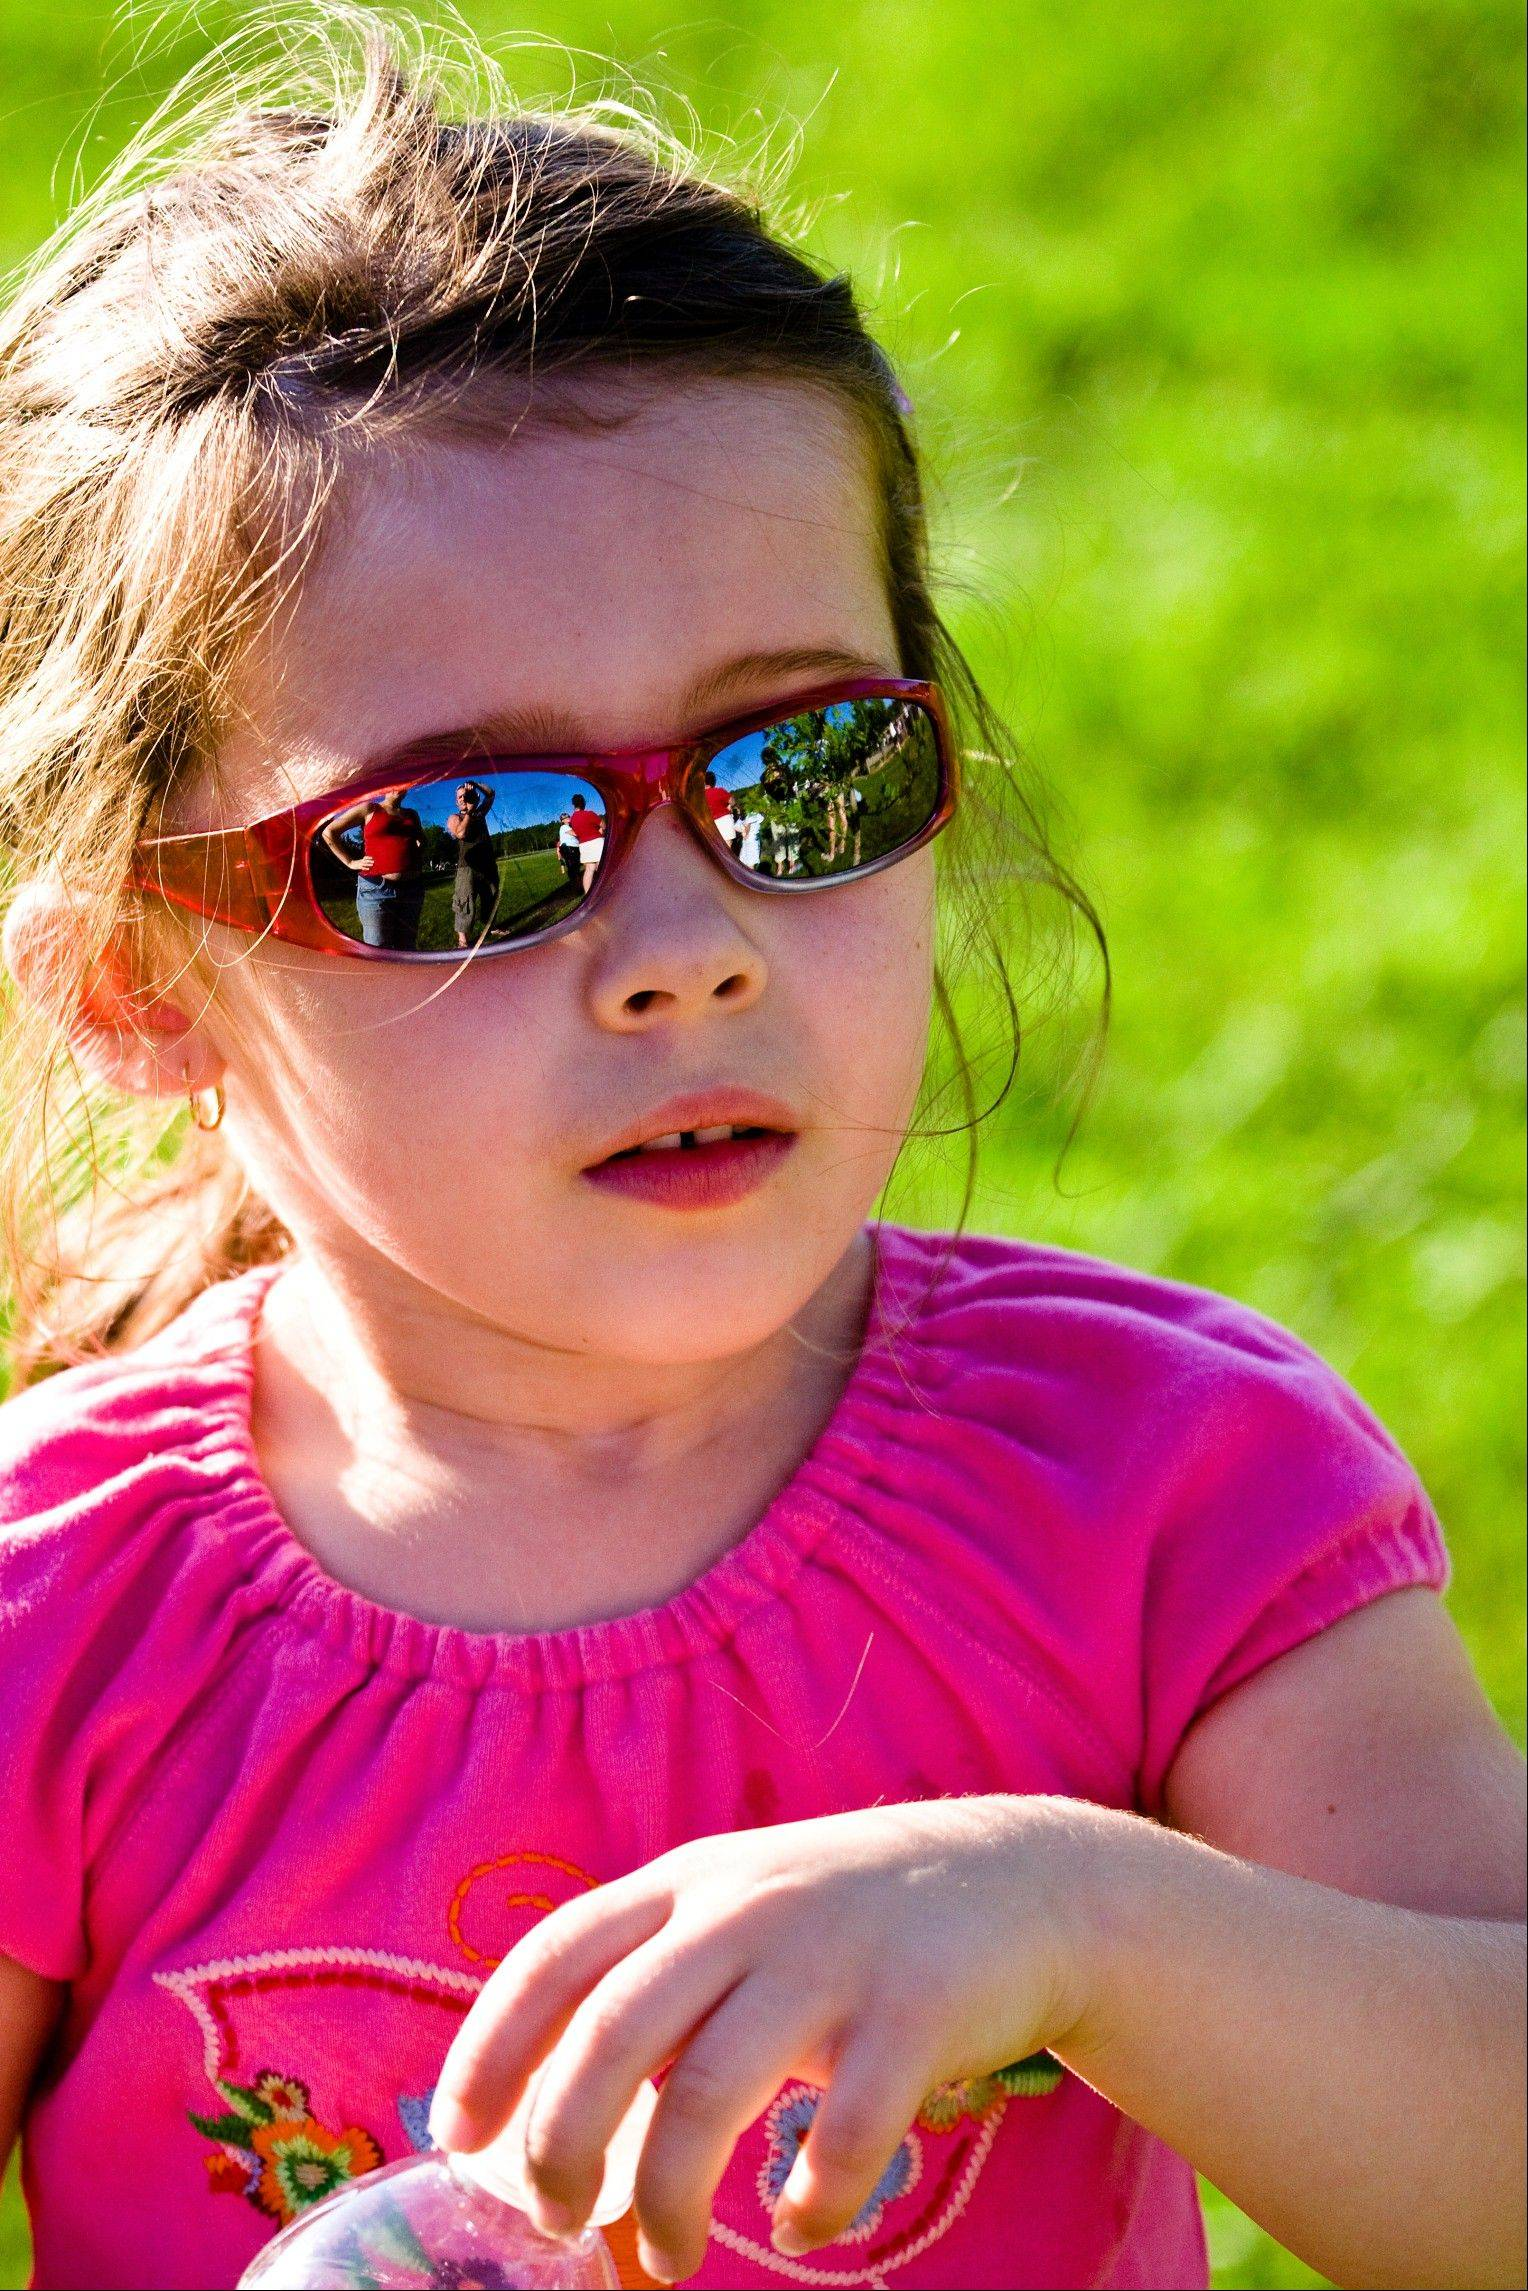 Wearing sunglasses can protect children from harmful UV exposure.